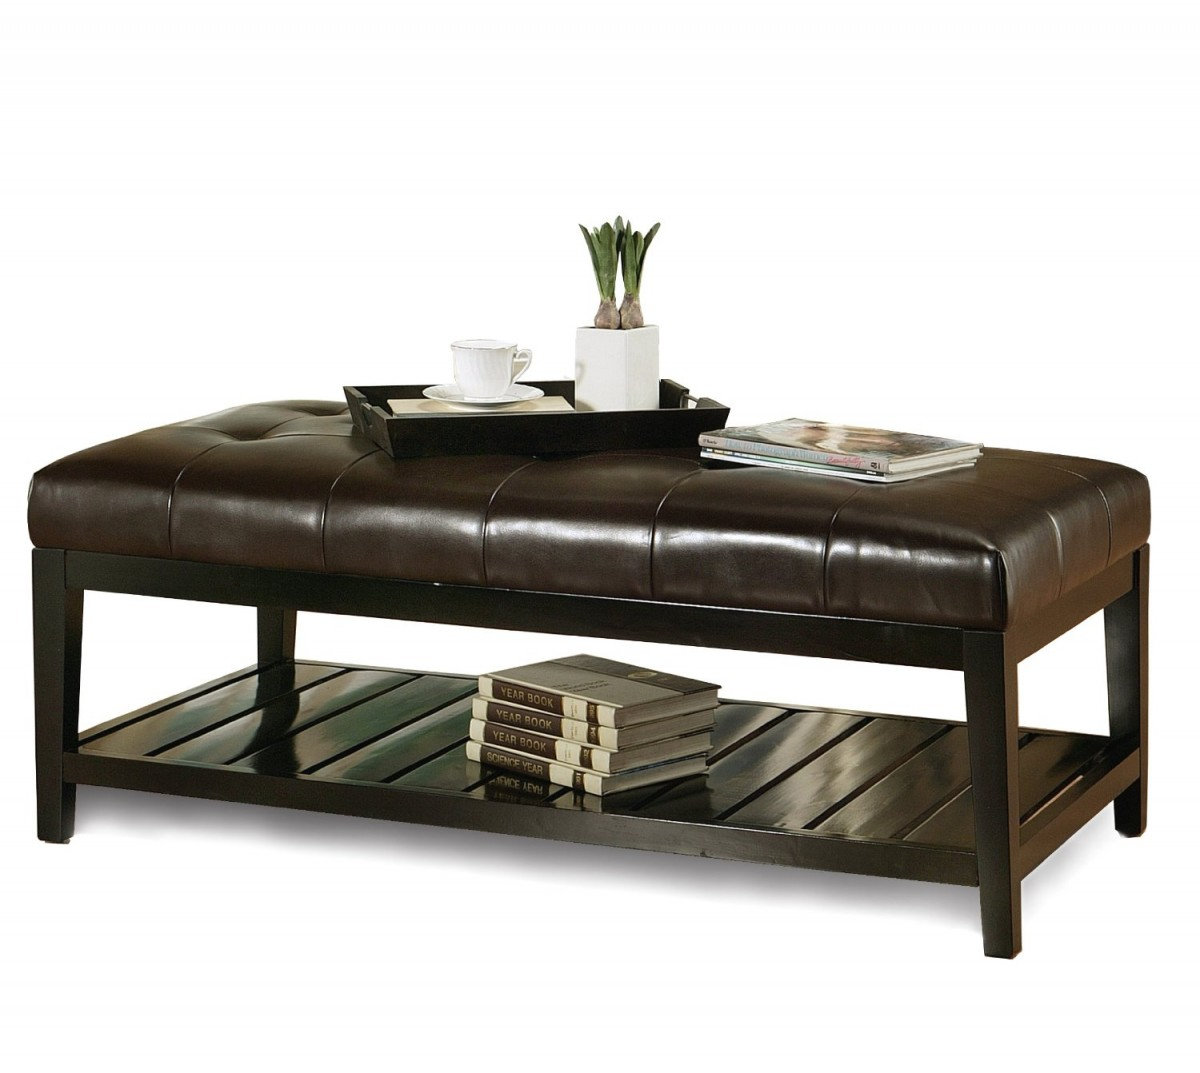 brown-Modern-wood-coffee-table-reclaimed-metal-mid-century-round-natural-diy-leather-ottoman-coffee-table-rectangle (Image 1 of 10)